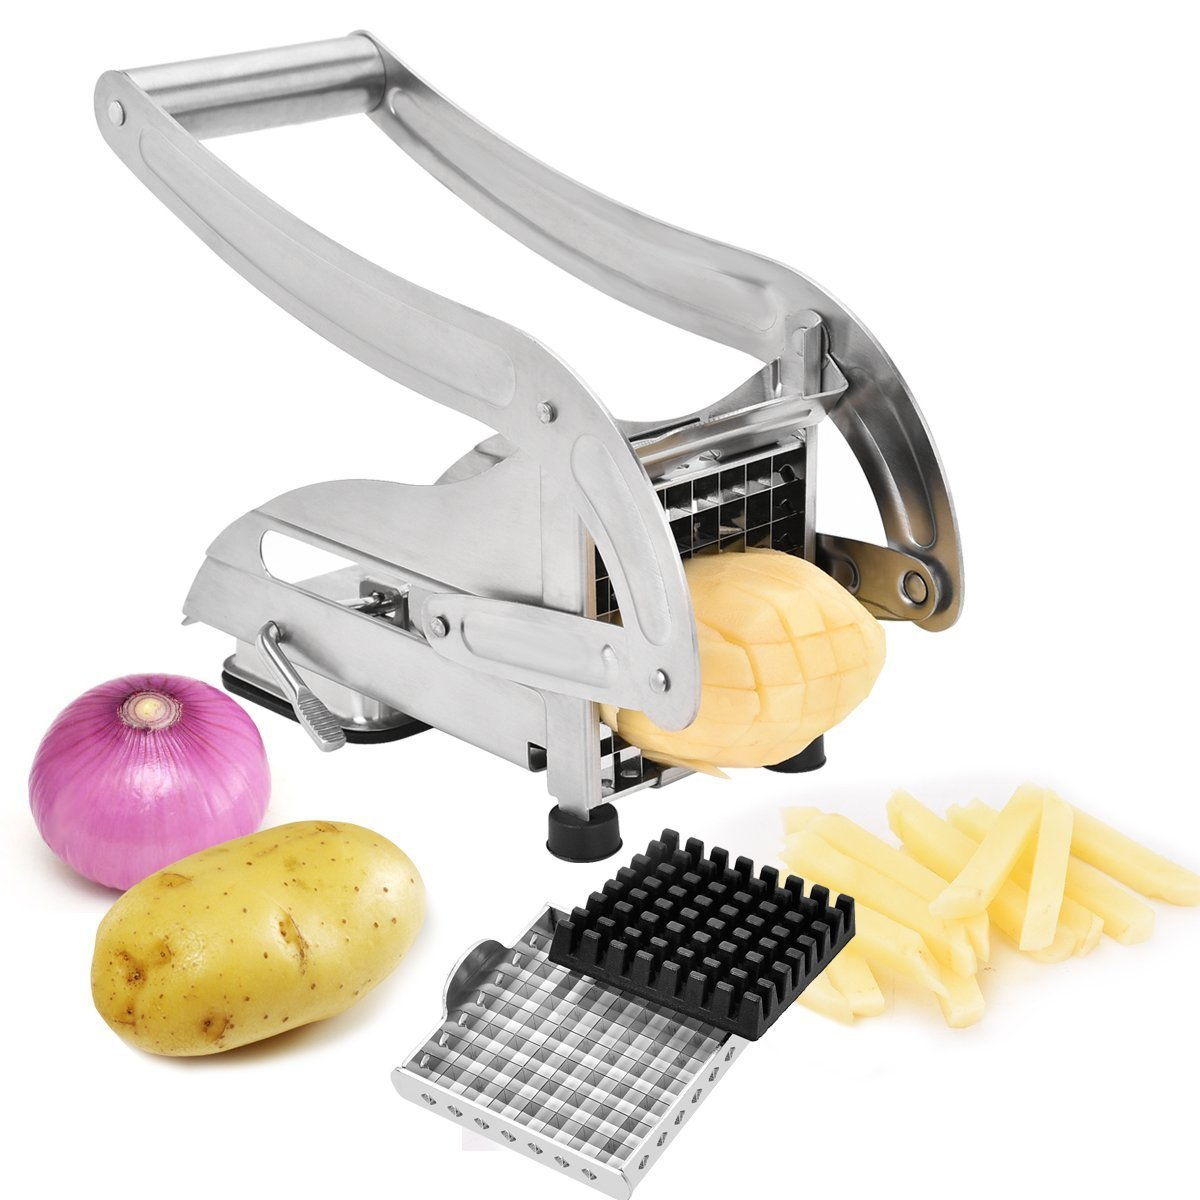 Stainless Steel French Fries Potato Cutter with 2 Interchangeable Blades